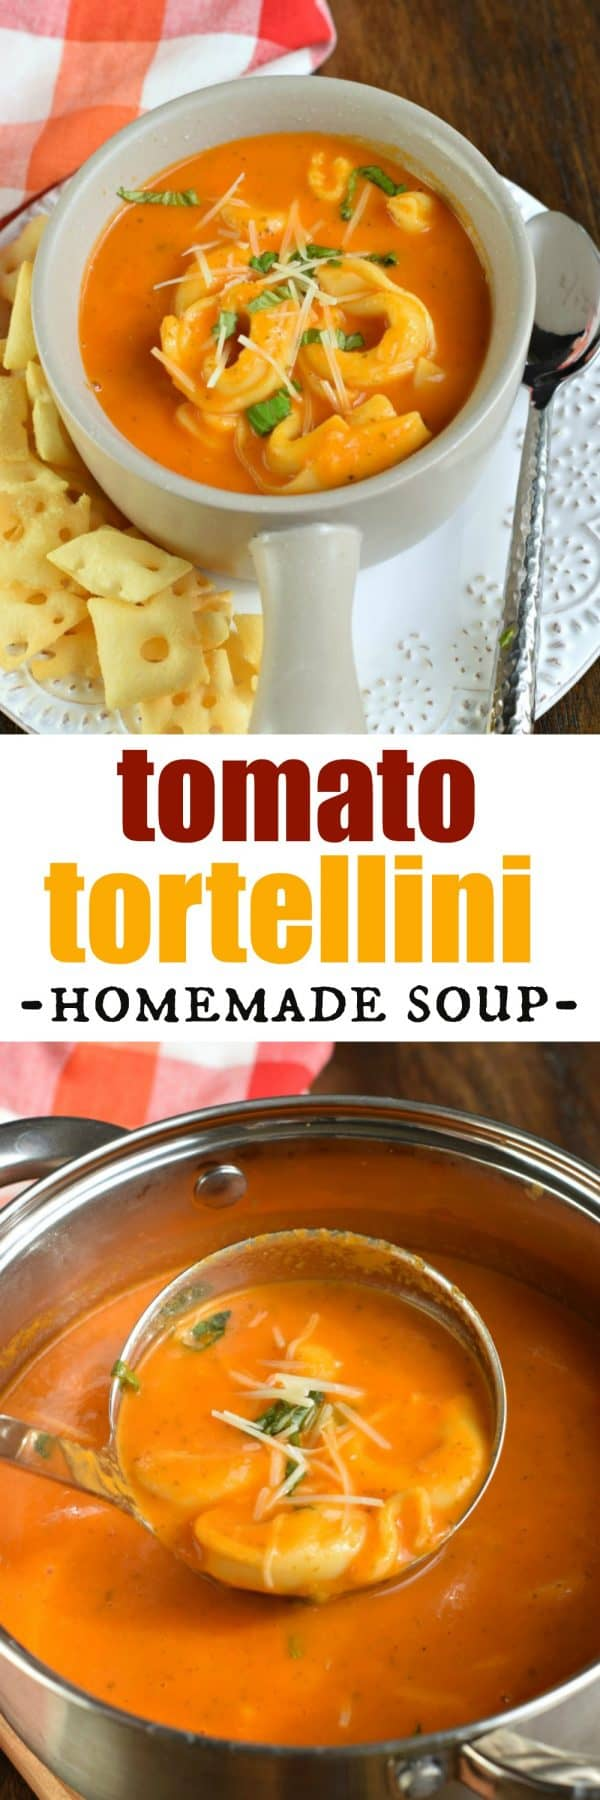 Delicious, homemade Roasted Tomato Tortellini Soup recipe. You'll love this restaurant quality soup that's full of flavor and easy to make!